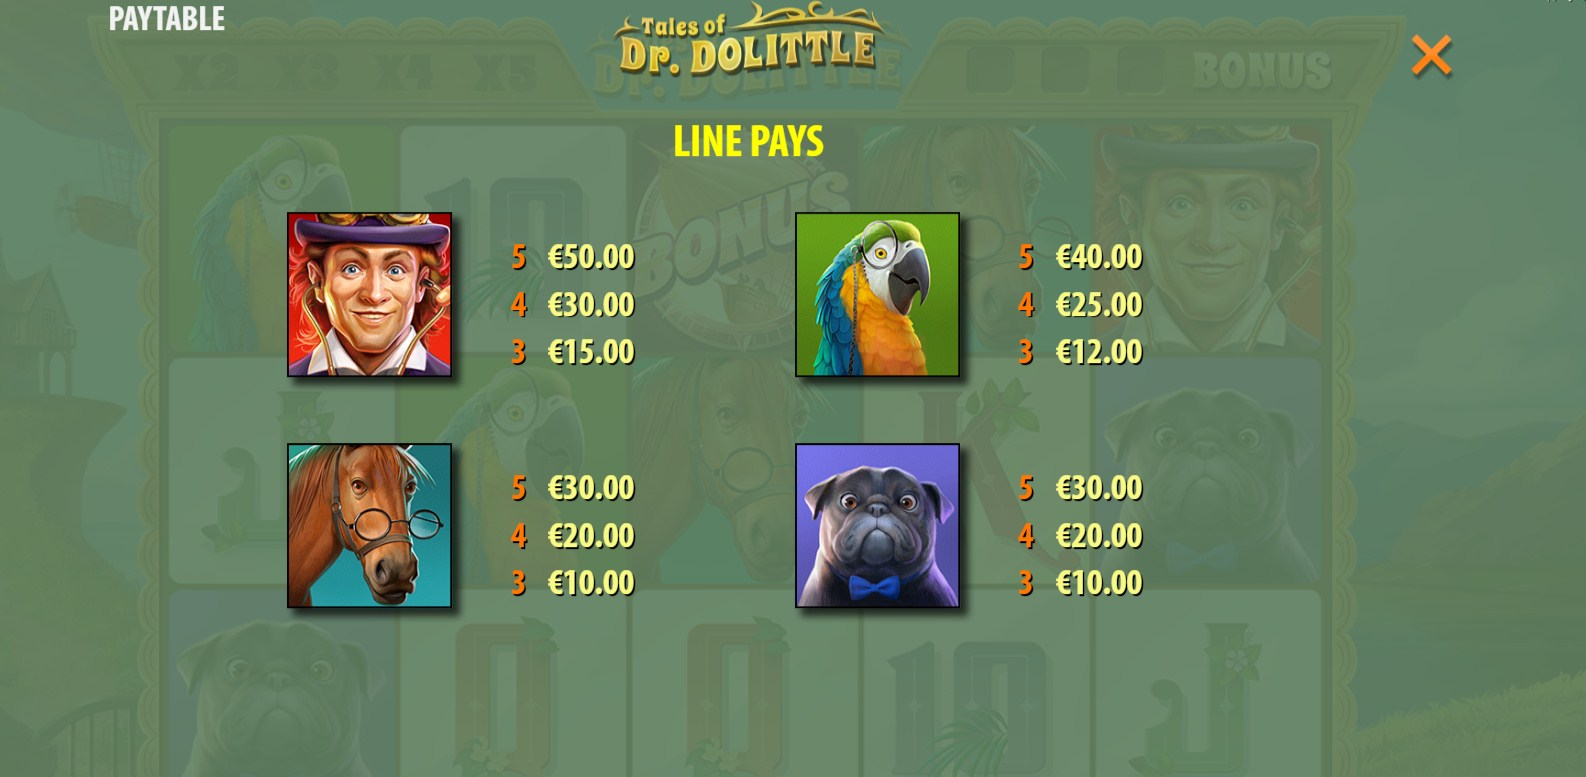 Tales of Dr. Dolittle Slot Paytable